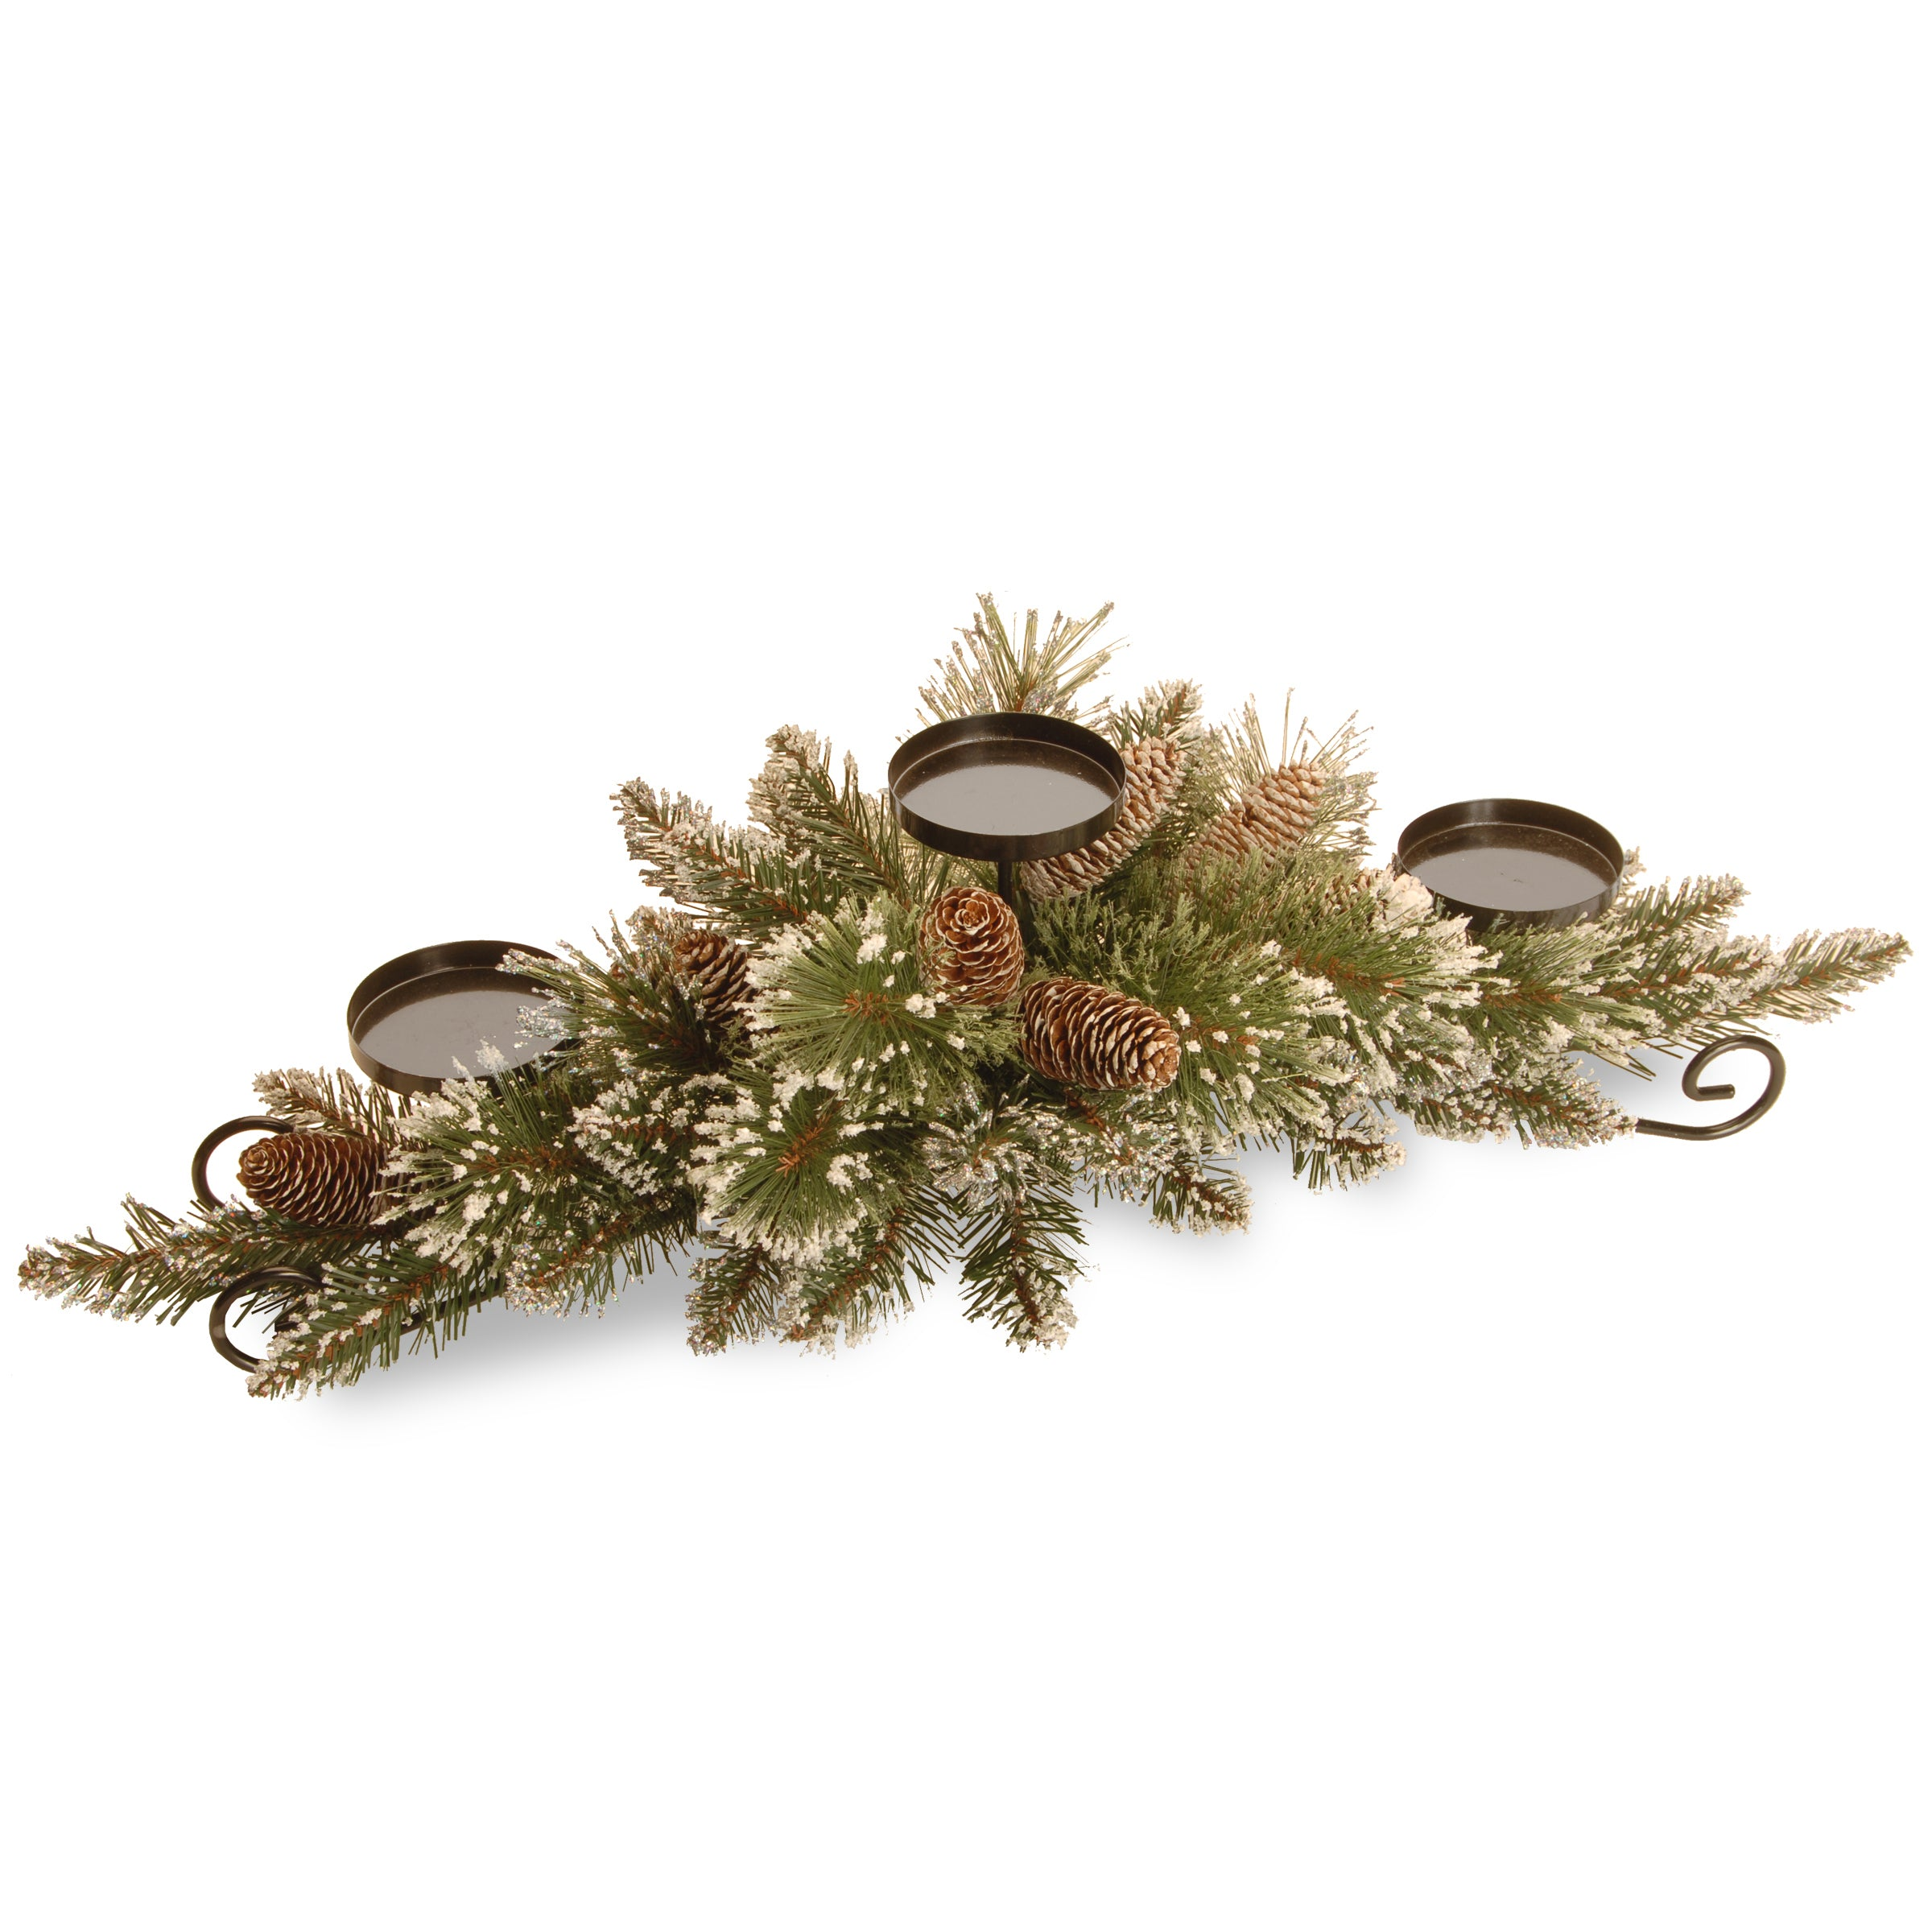 """National Tree GB3-810-30C-B 30"""" Glittery Bristle Pine Centerpiece w/3 Candle Holders & 6 White Tipped Cones"""